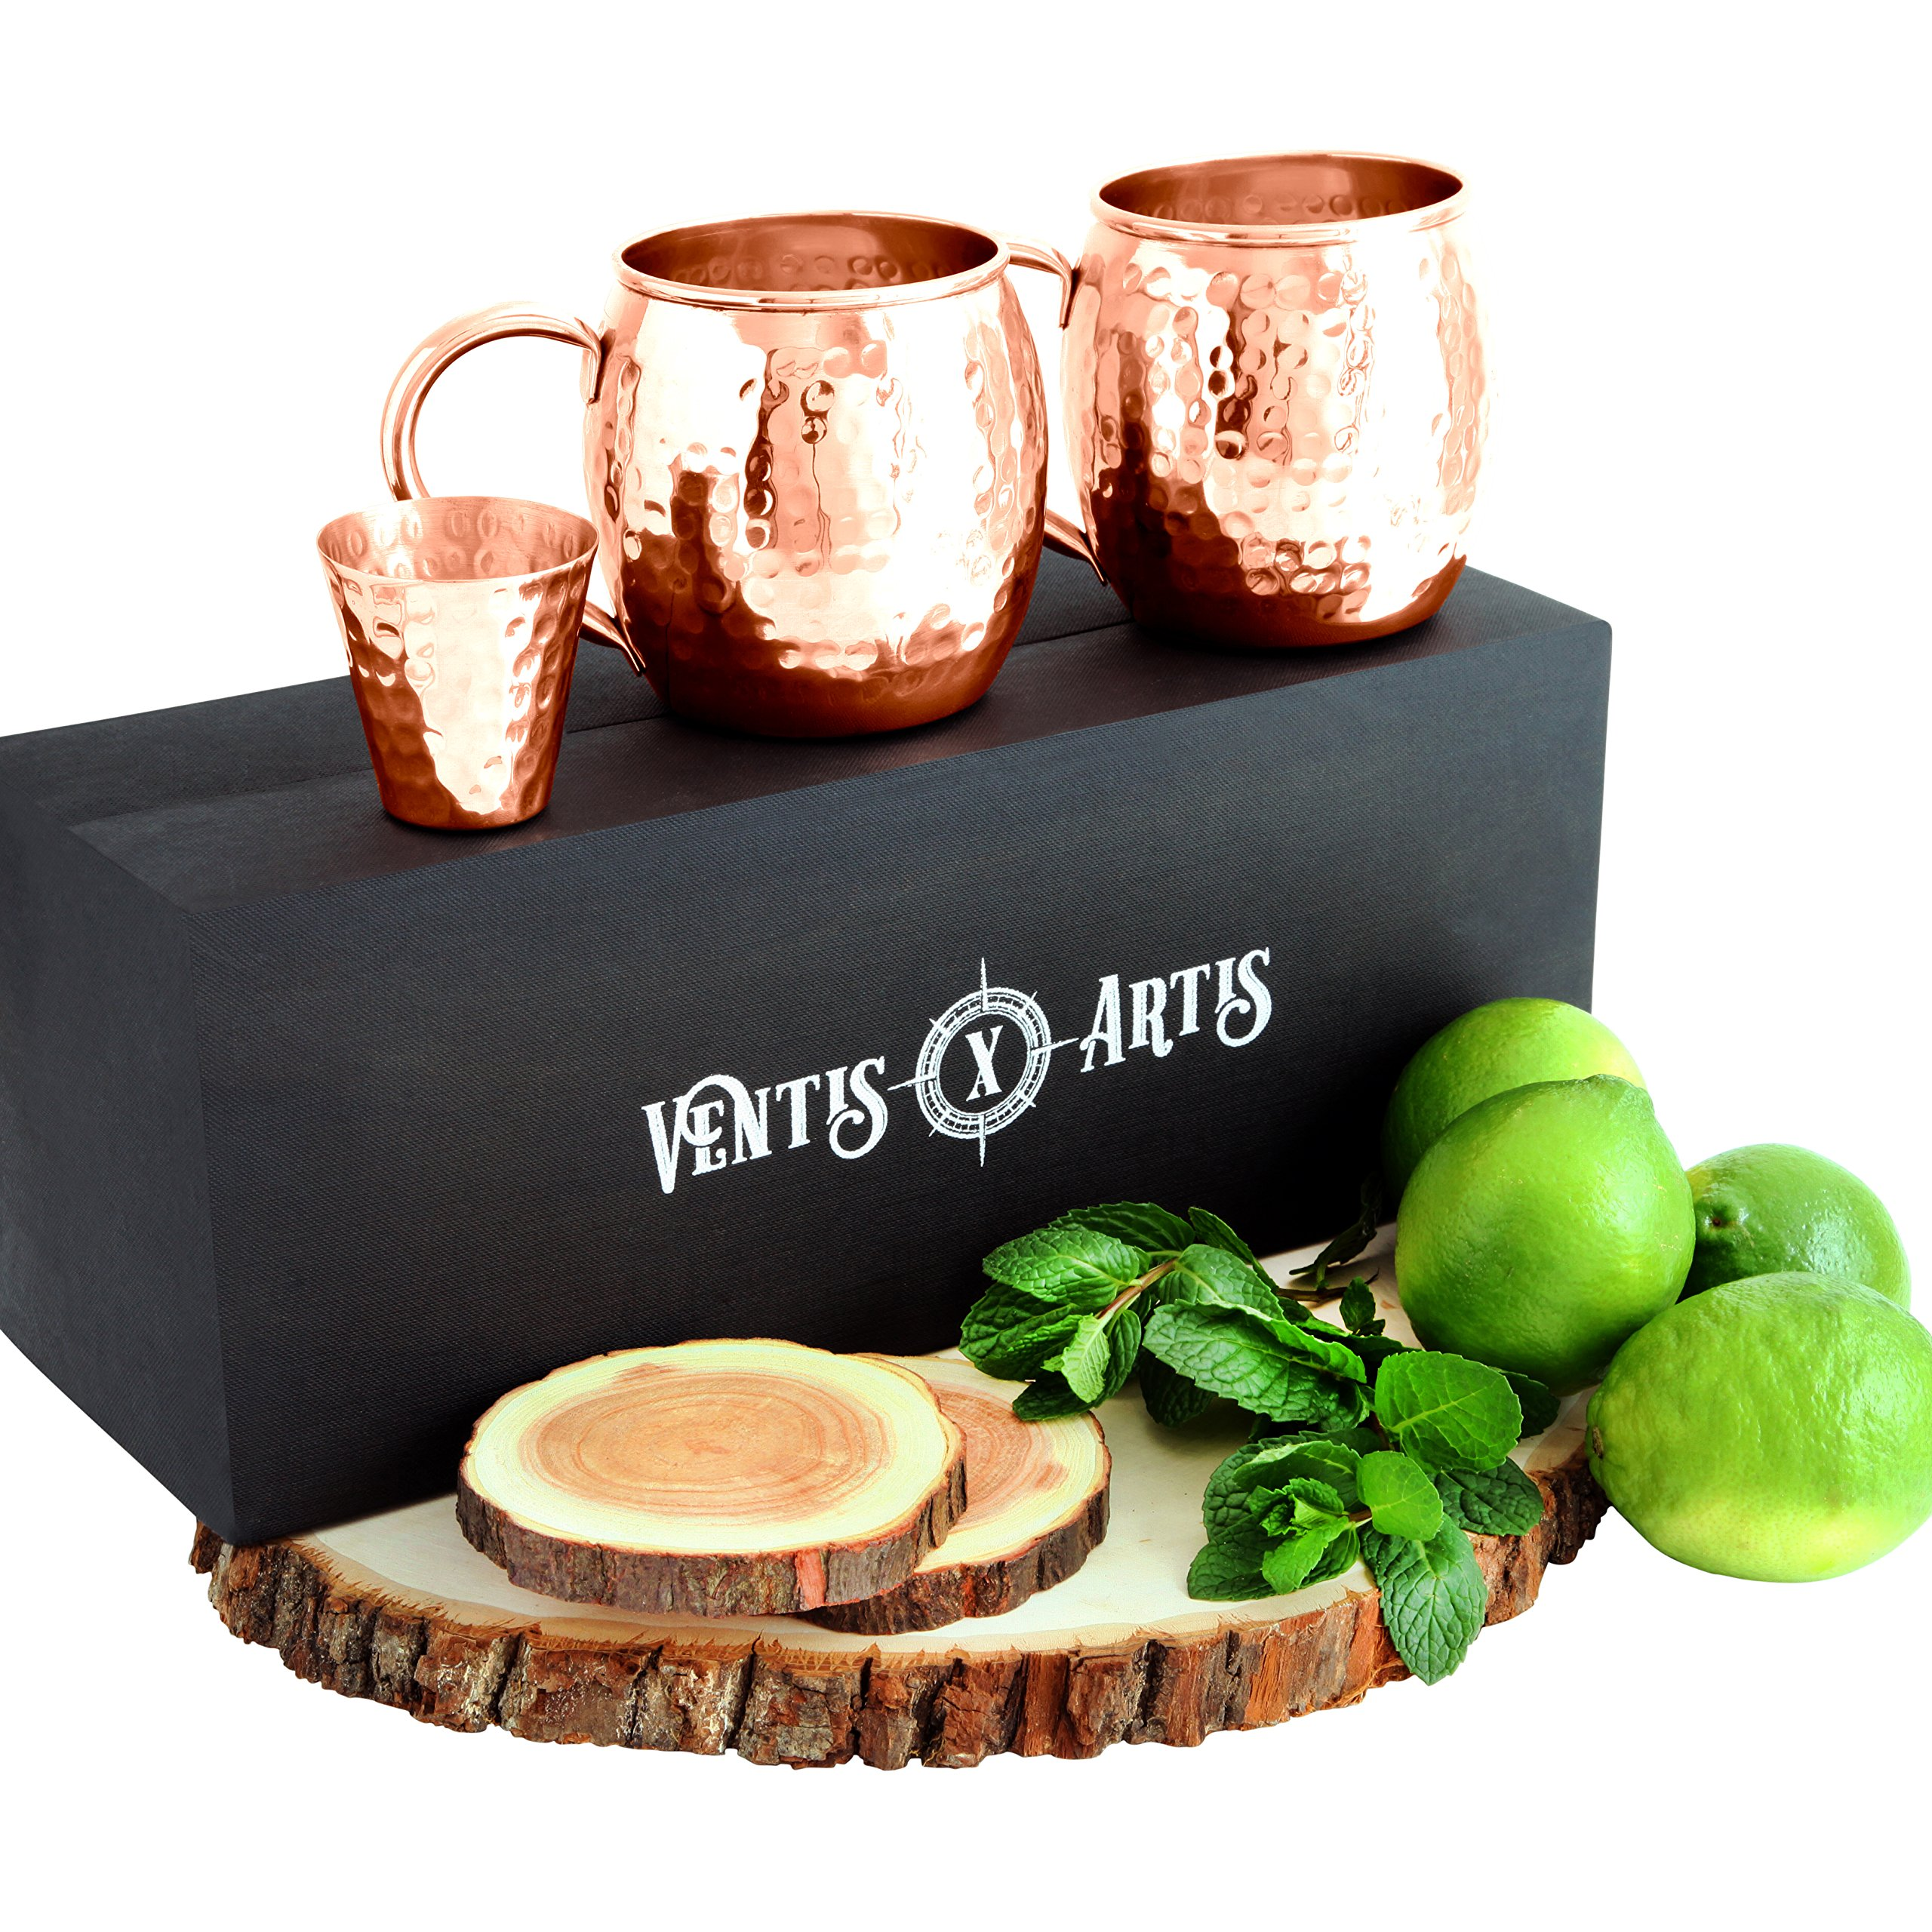 NEW! Trendy Handcrafted Moscow Mule Copper Mug Gift Set INCLUDING Copper Jigger, Beautiful Black Satin Box And Artisan 2x Saguan Teak Wood Handcrafted Coasters